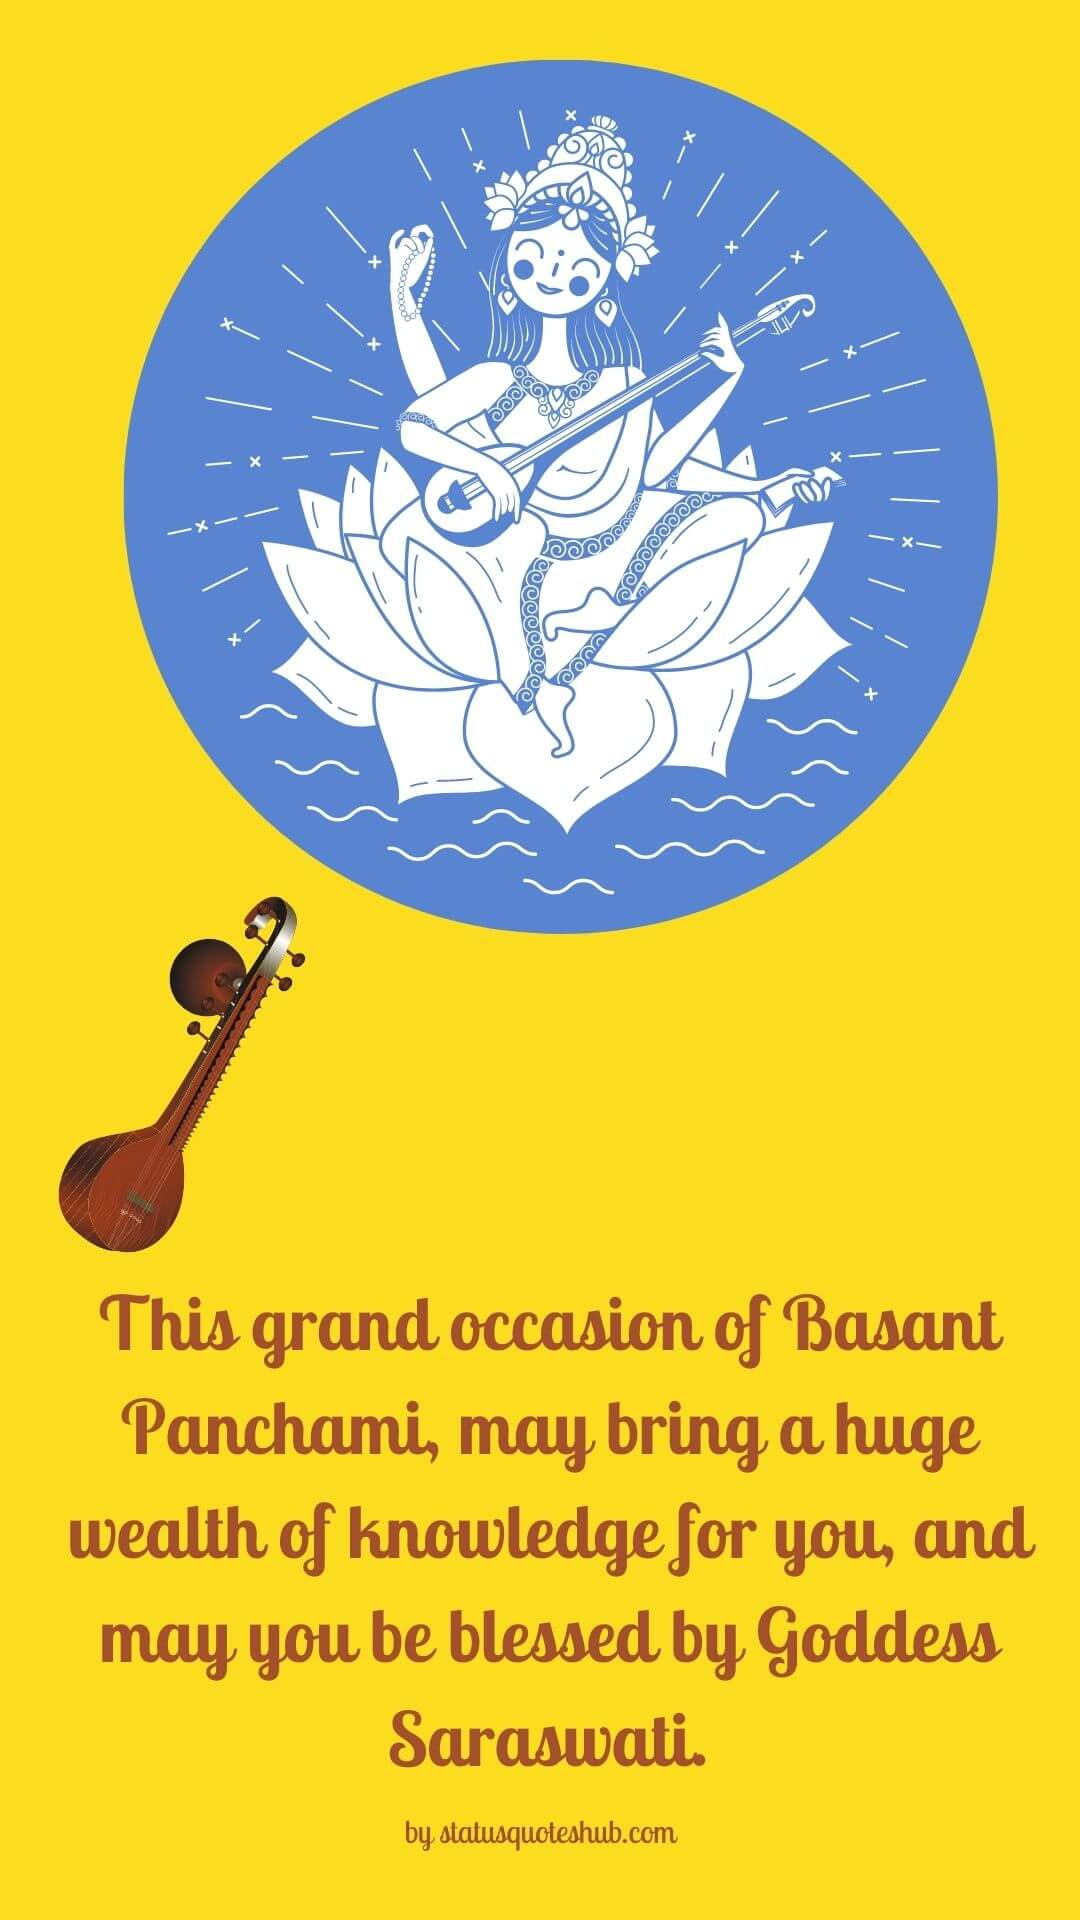 basant panchami wishes and messages